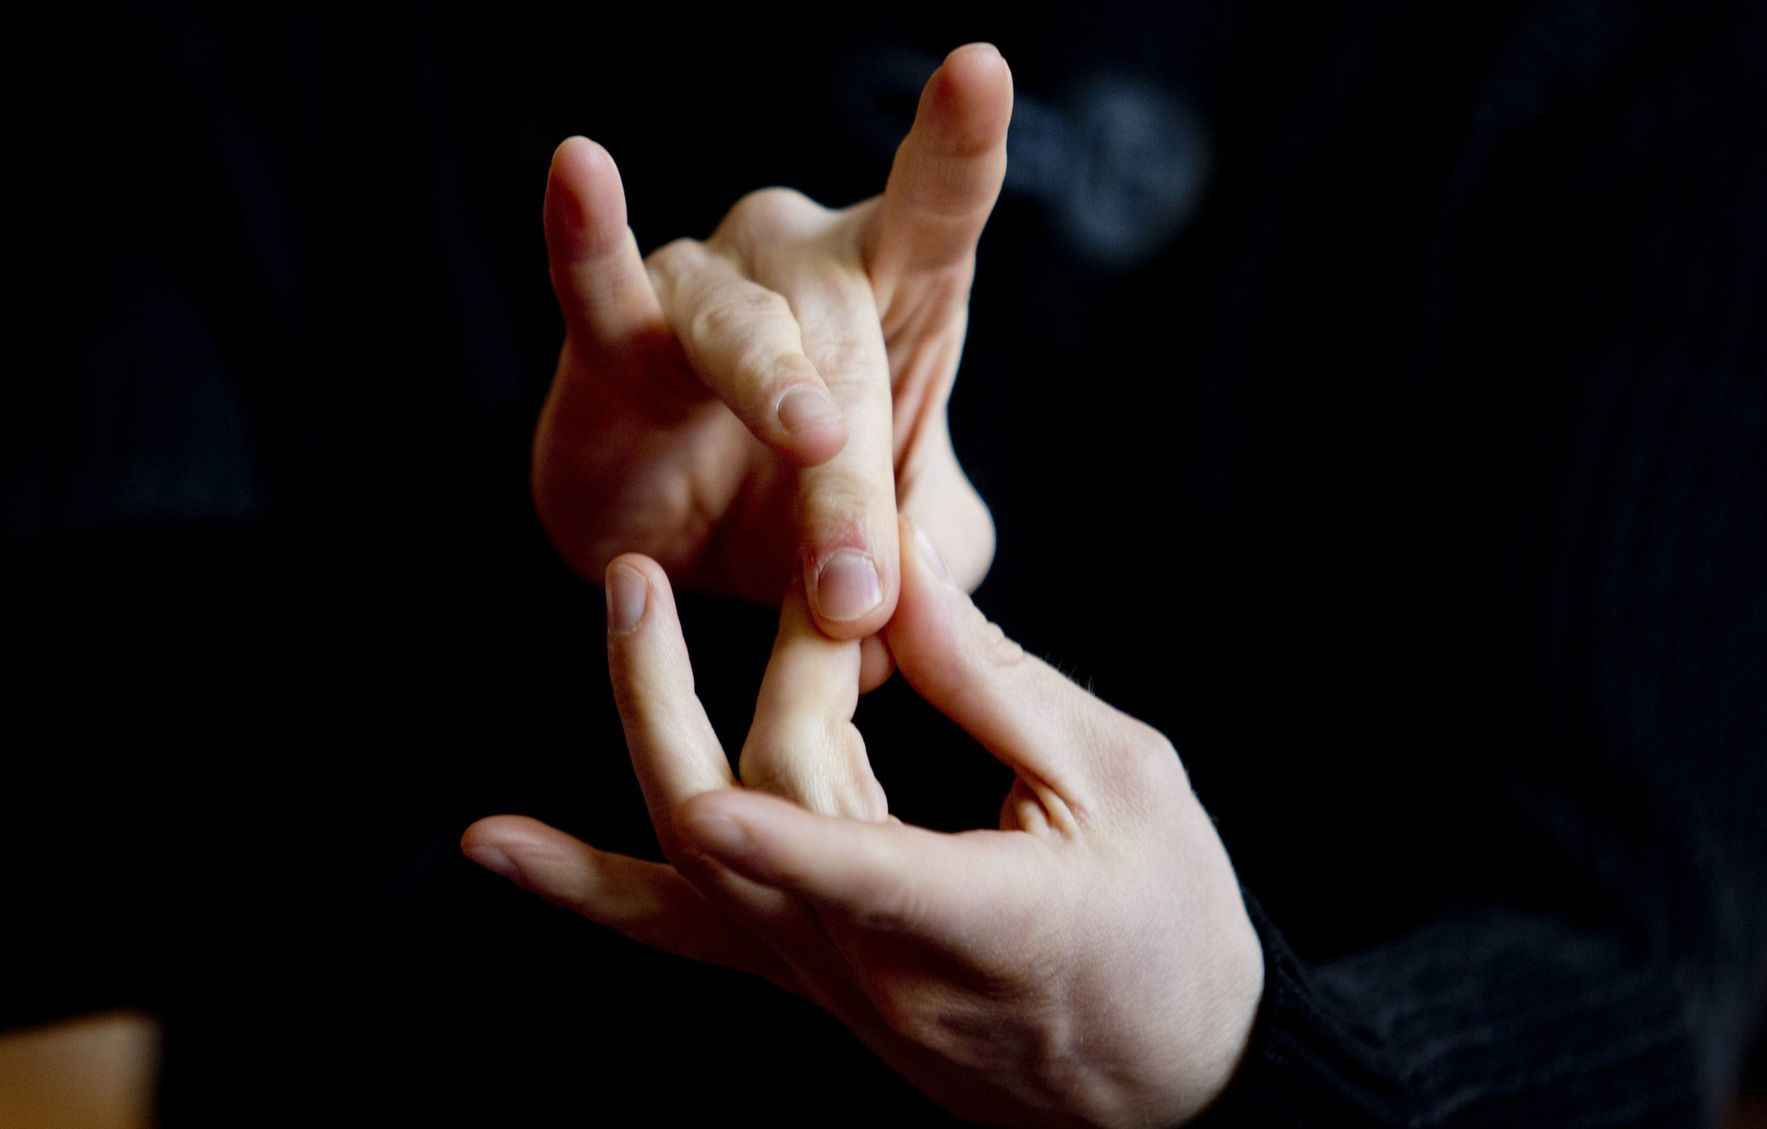 The Spiritual Lives of the Deaf and Hard of Hearing image